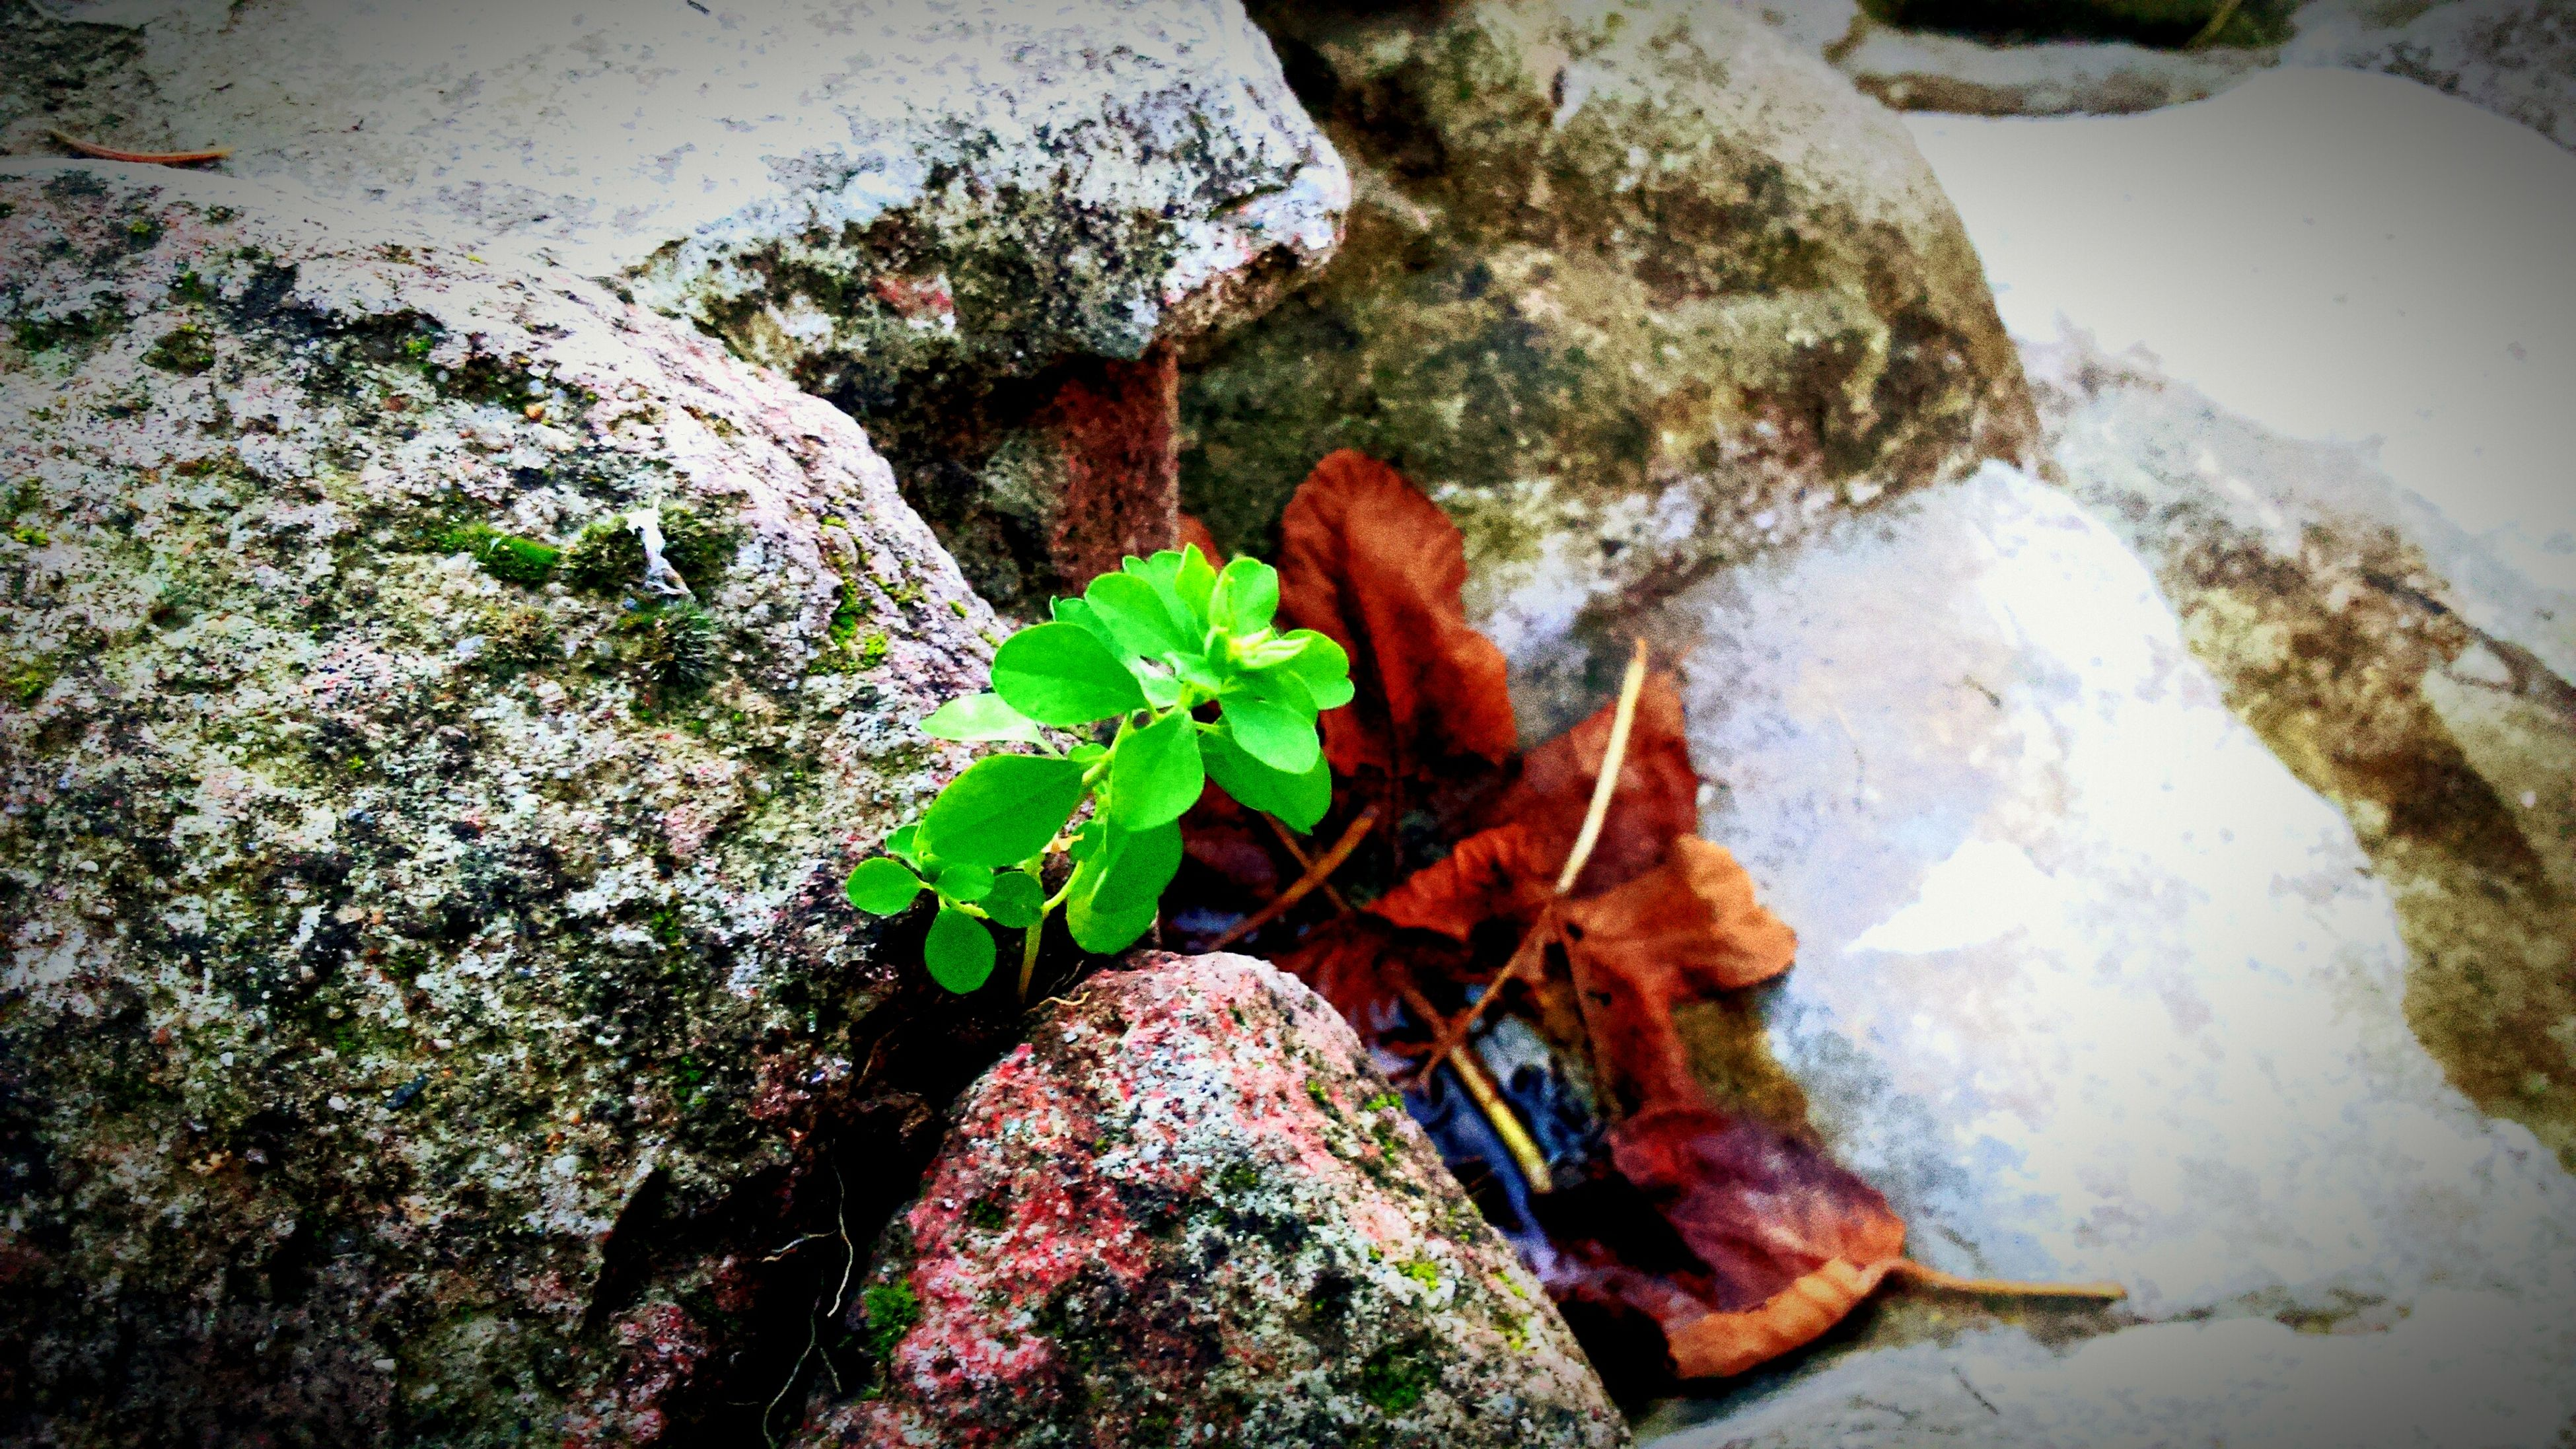 rock - object, growth, plant, high angle view, nature, leaf, moss, beauty in nature, rock, rock formation, tranquility, green color, growing, close-up, day, outdoors, stone - object, flower, no people, textured